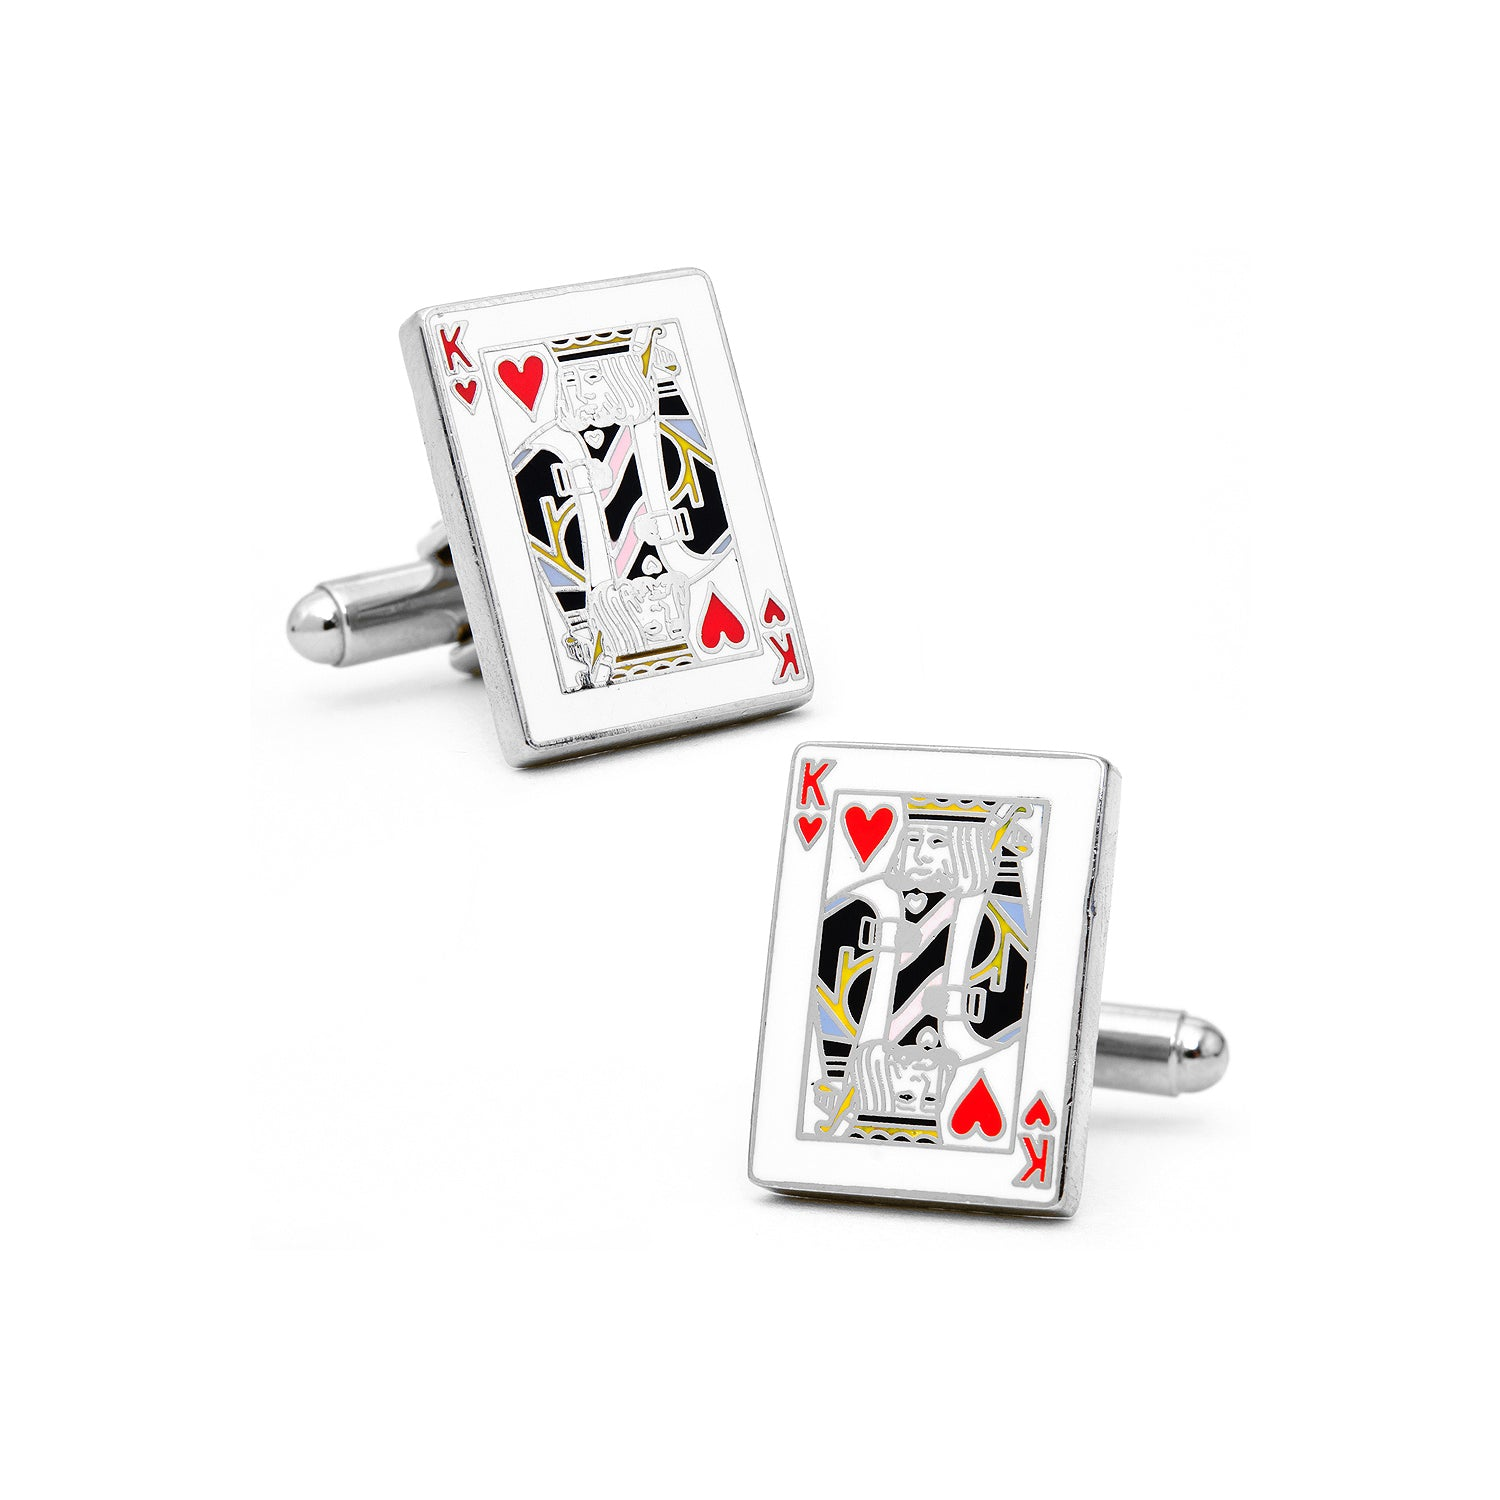 King Of Hearts Cufflinks, Nickel Plated Base Metal